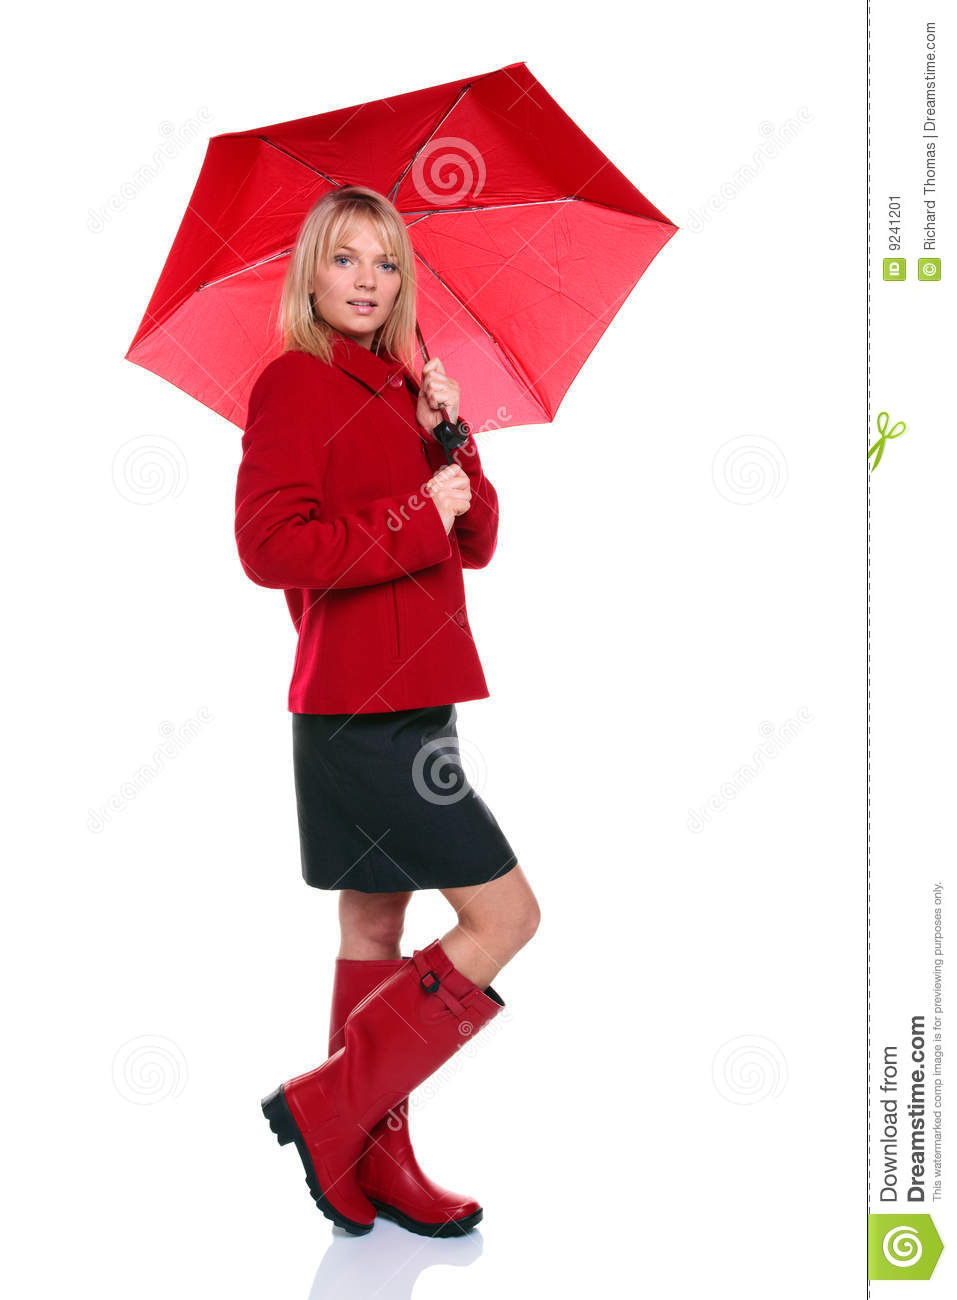 Woman In Red Coat, Boots And Umbrella Stock Image - Image: 9241201